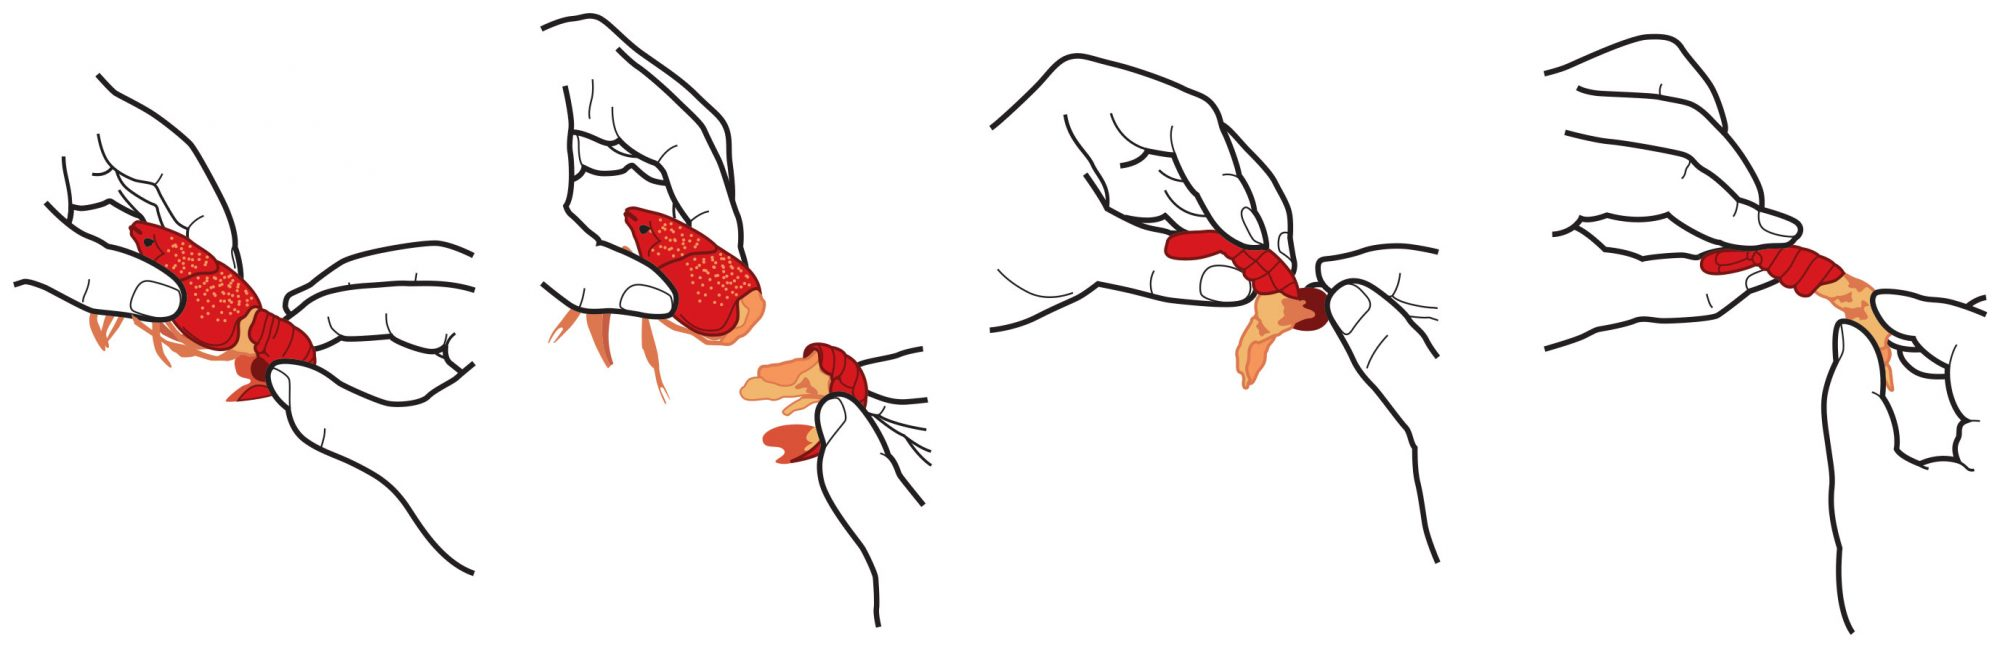 How To Eat Boiled Crawfish: Tug